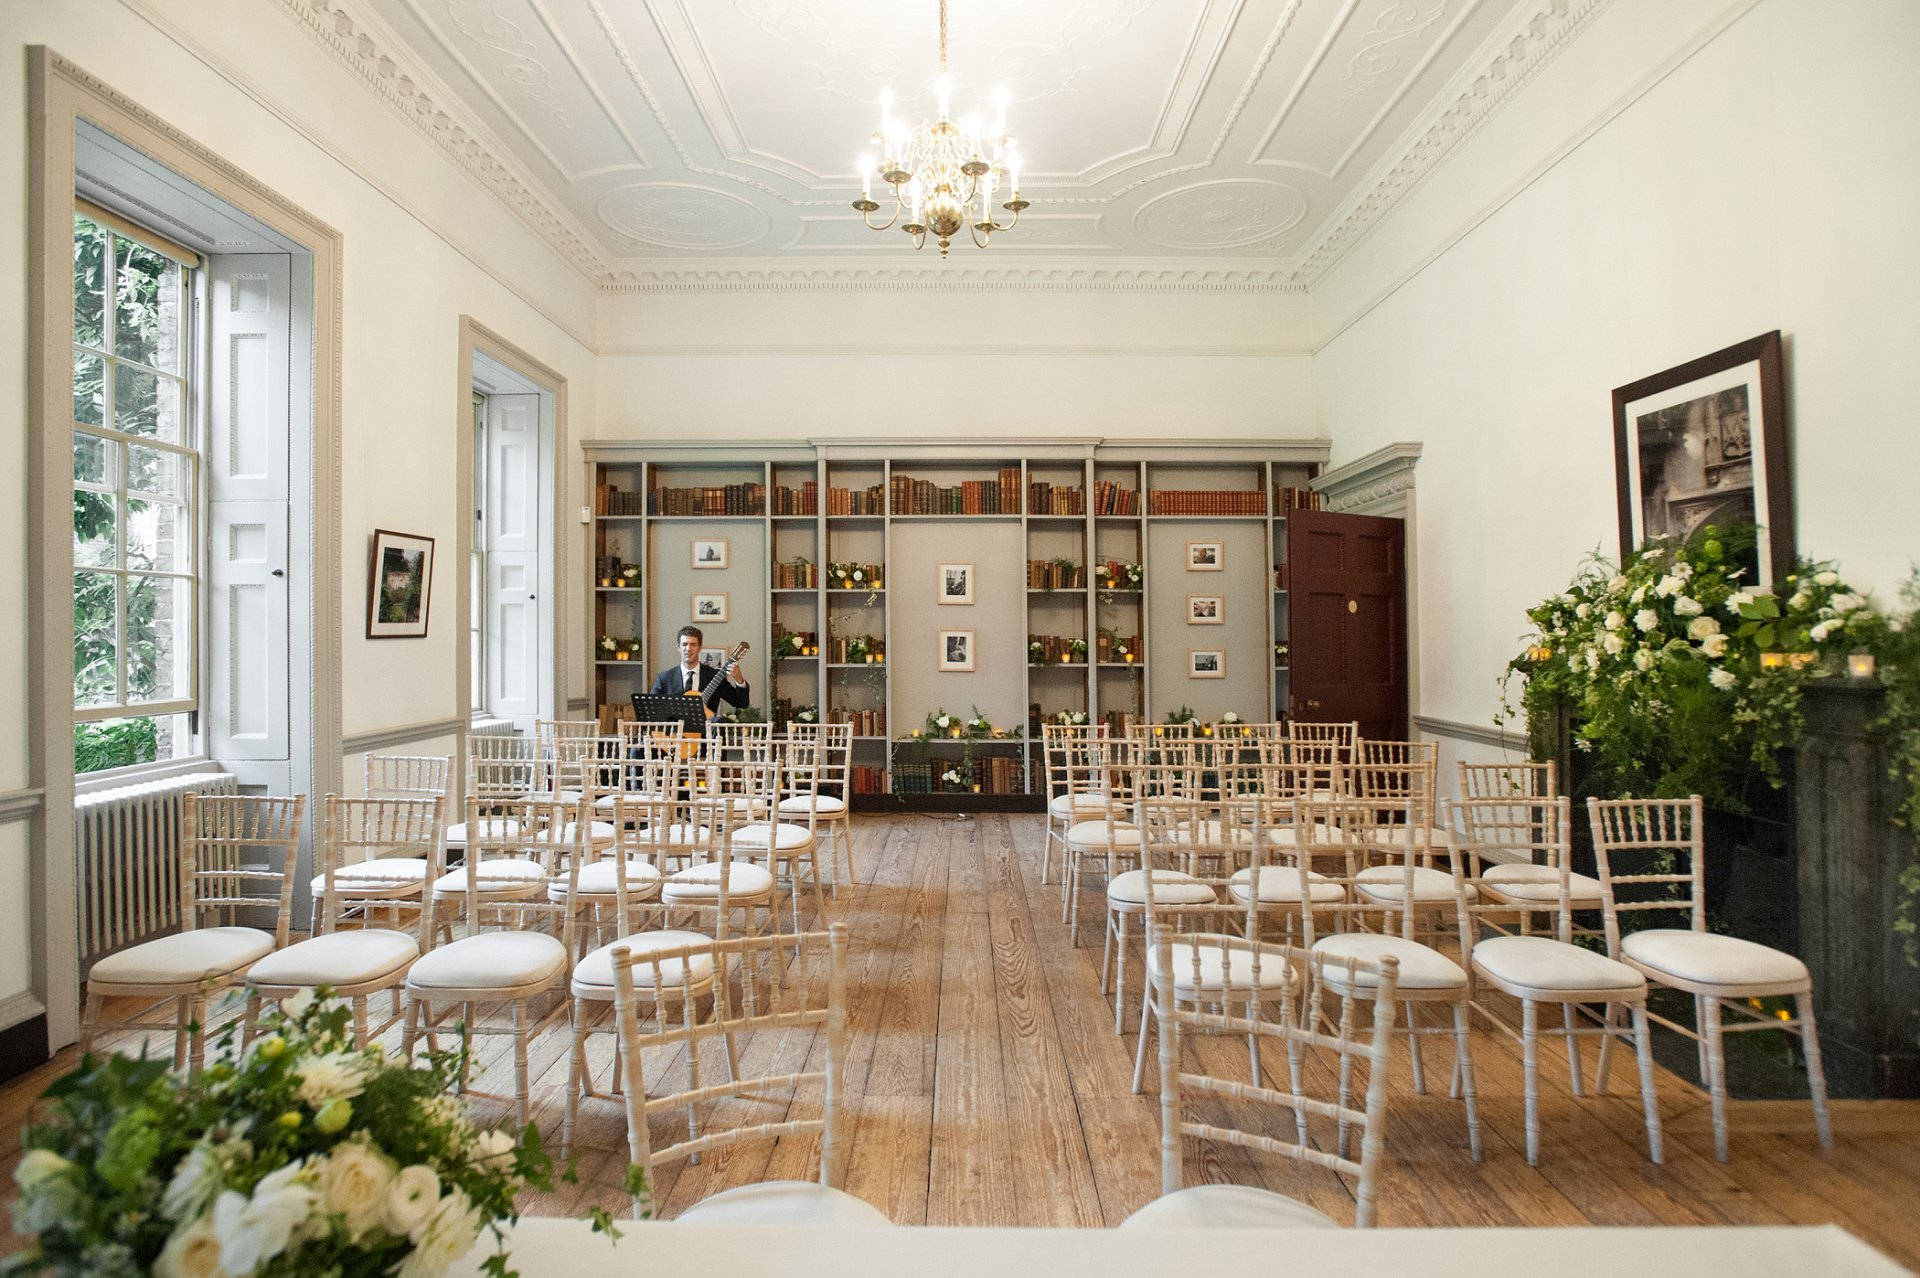 Fulham Palace's Bishop Terrick's Drawing Room with feature bookcase and marble fireplace all decorated with flowers in creams and greens along with tealights. This is how the room looks laif out for a civil wedding ceremony for 30 guests